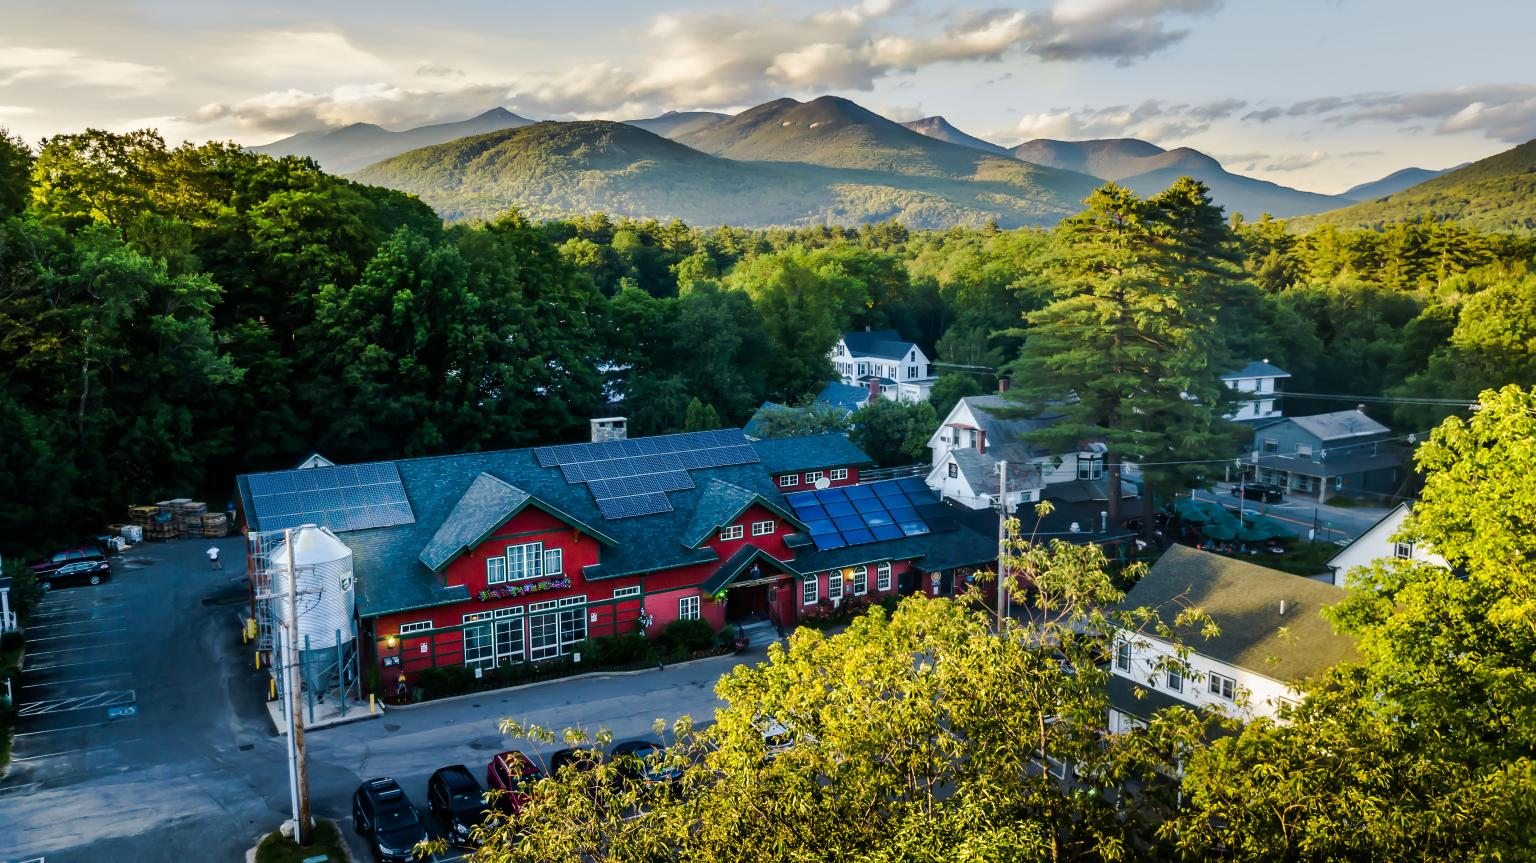 Woodstock Inn Brewery - Aerial View